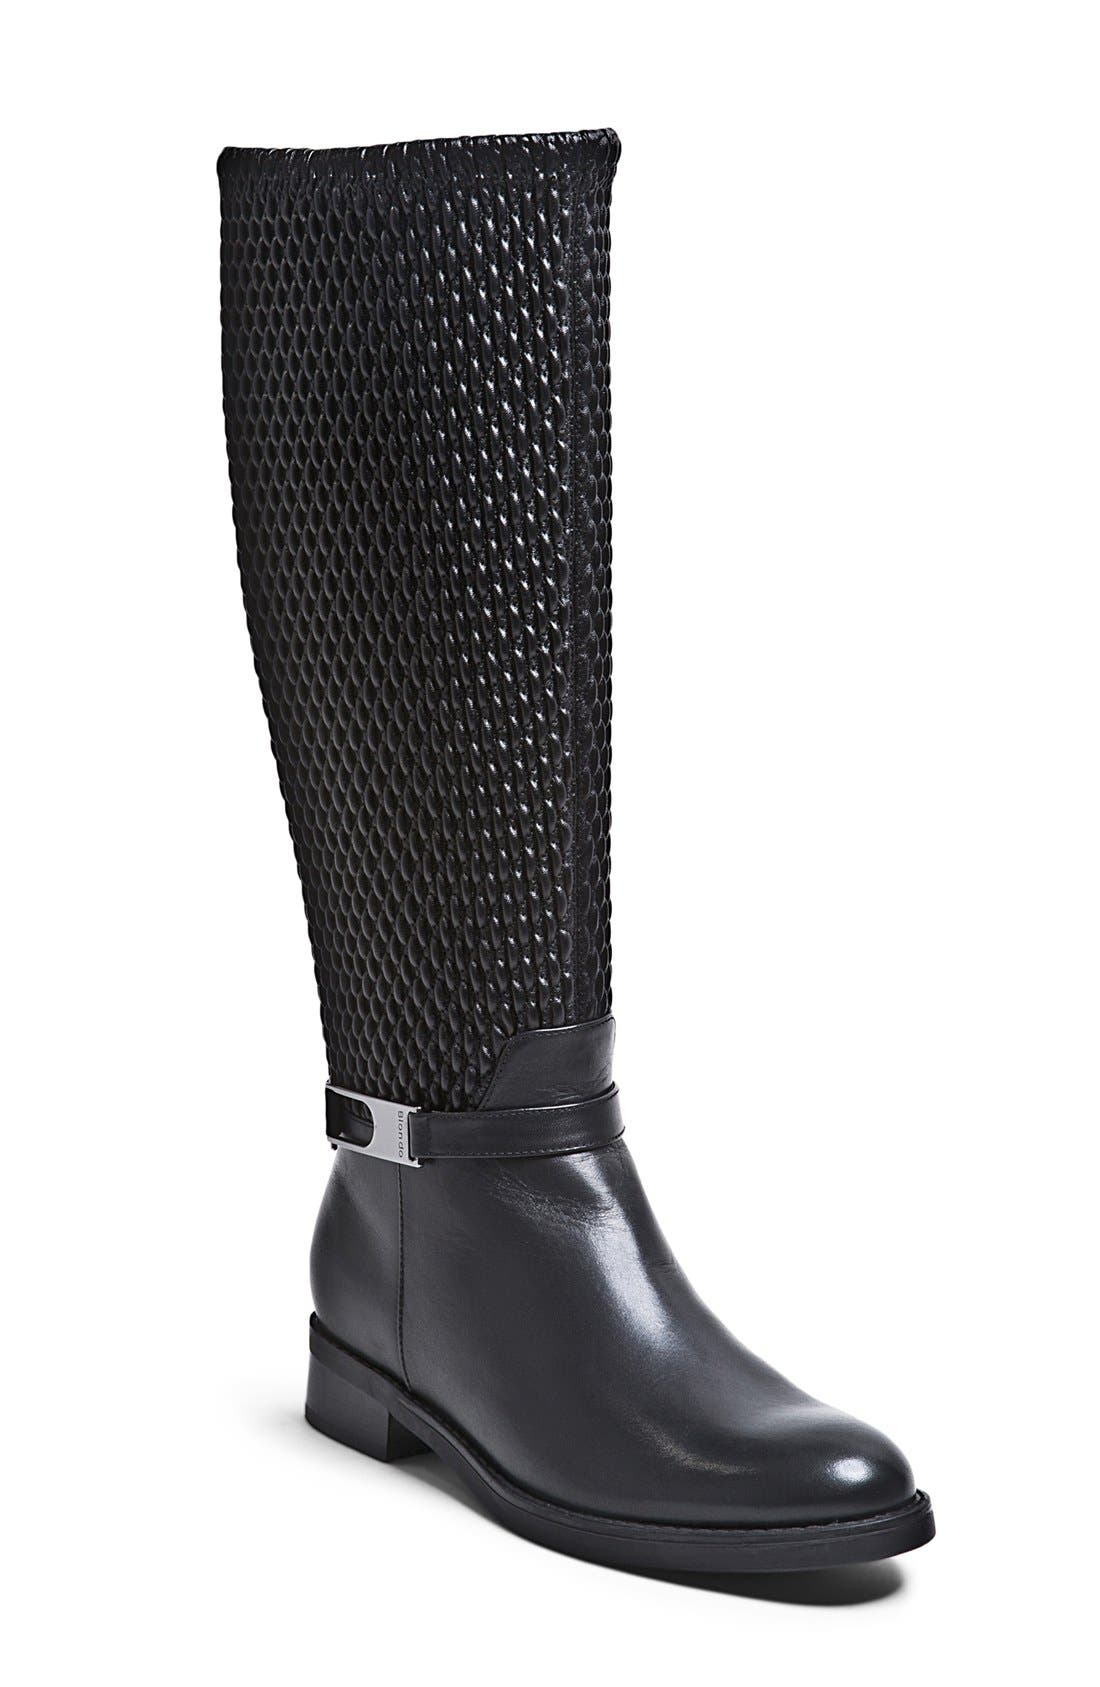 Alternate Image 1 Selected - Blondo 'Emma' Waterproof Stretch Shaft Riding Boot (Women)